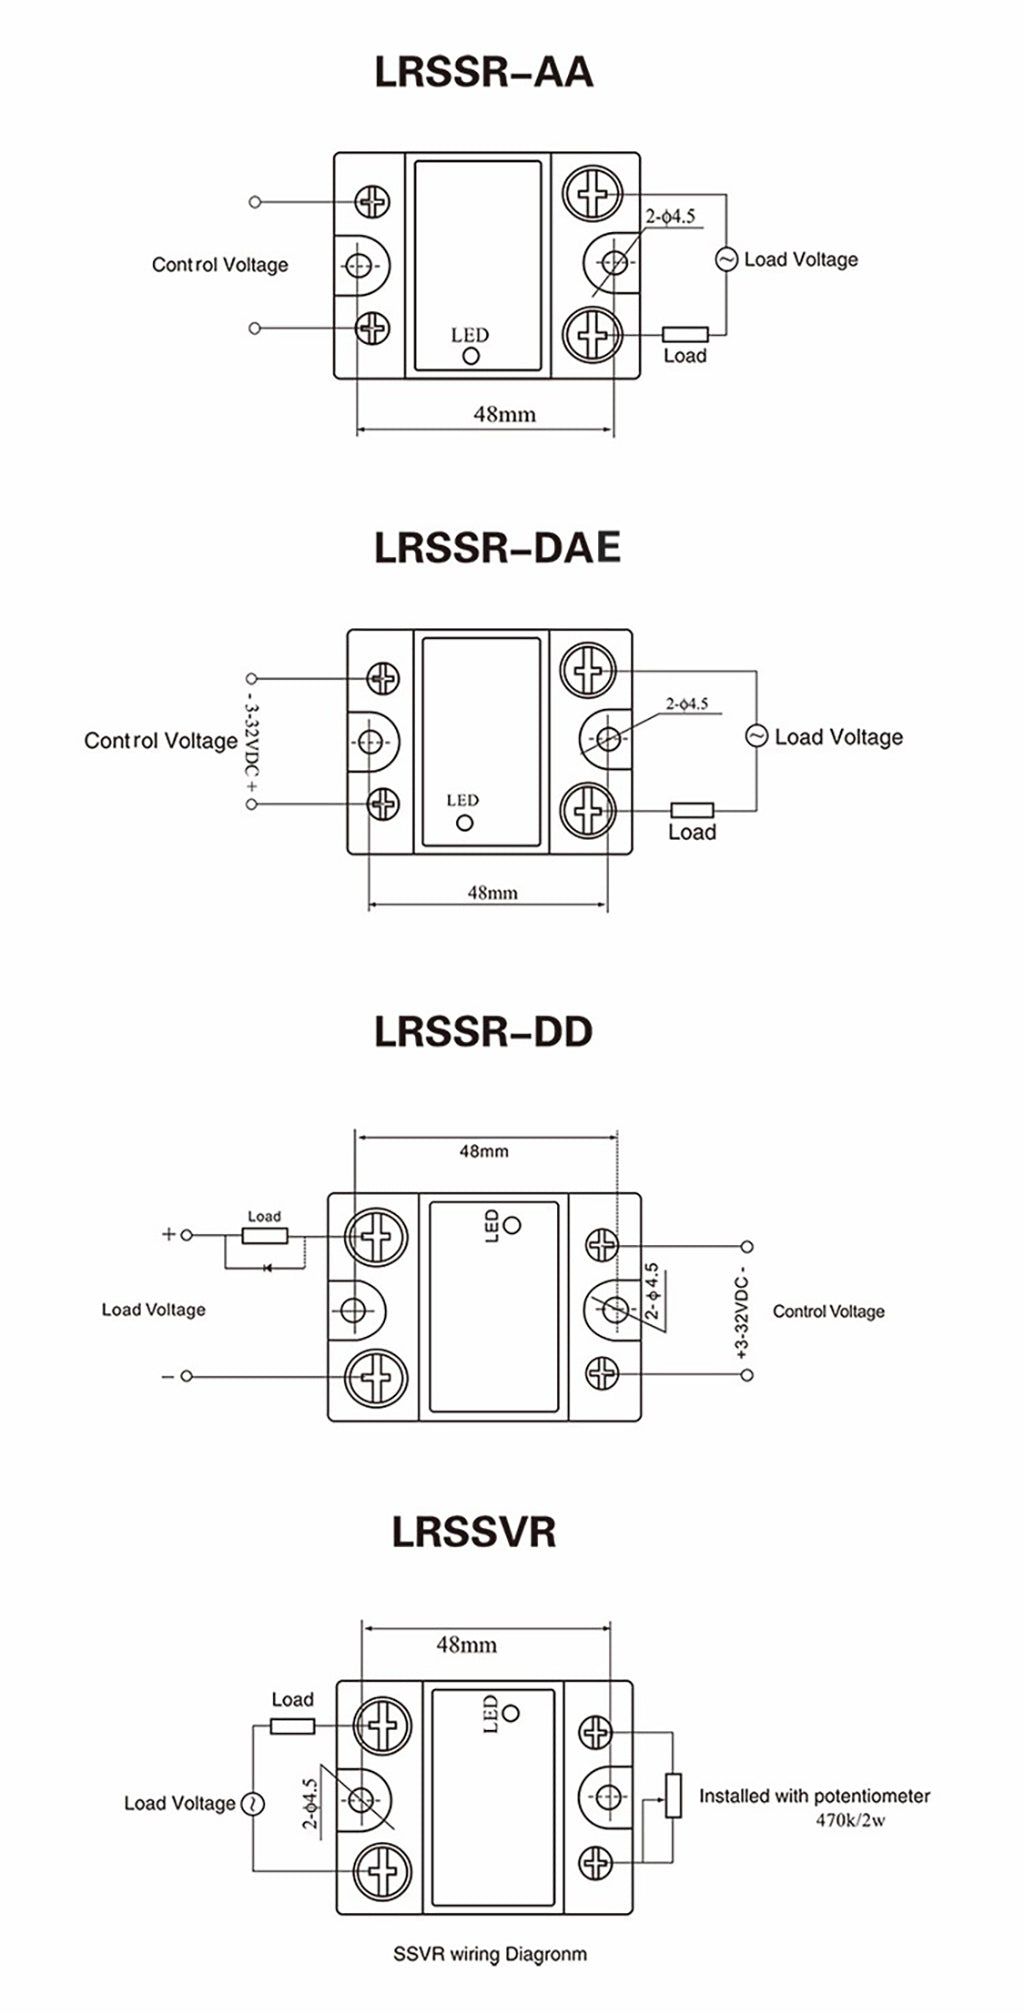 Connecting Diagram-LRSSR